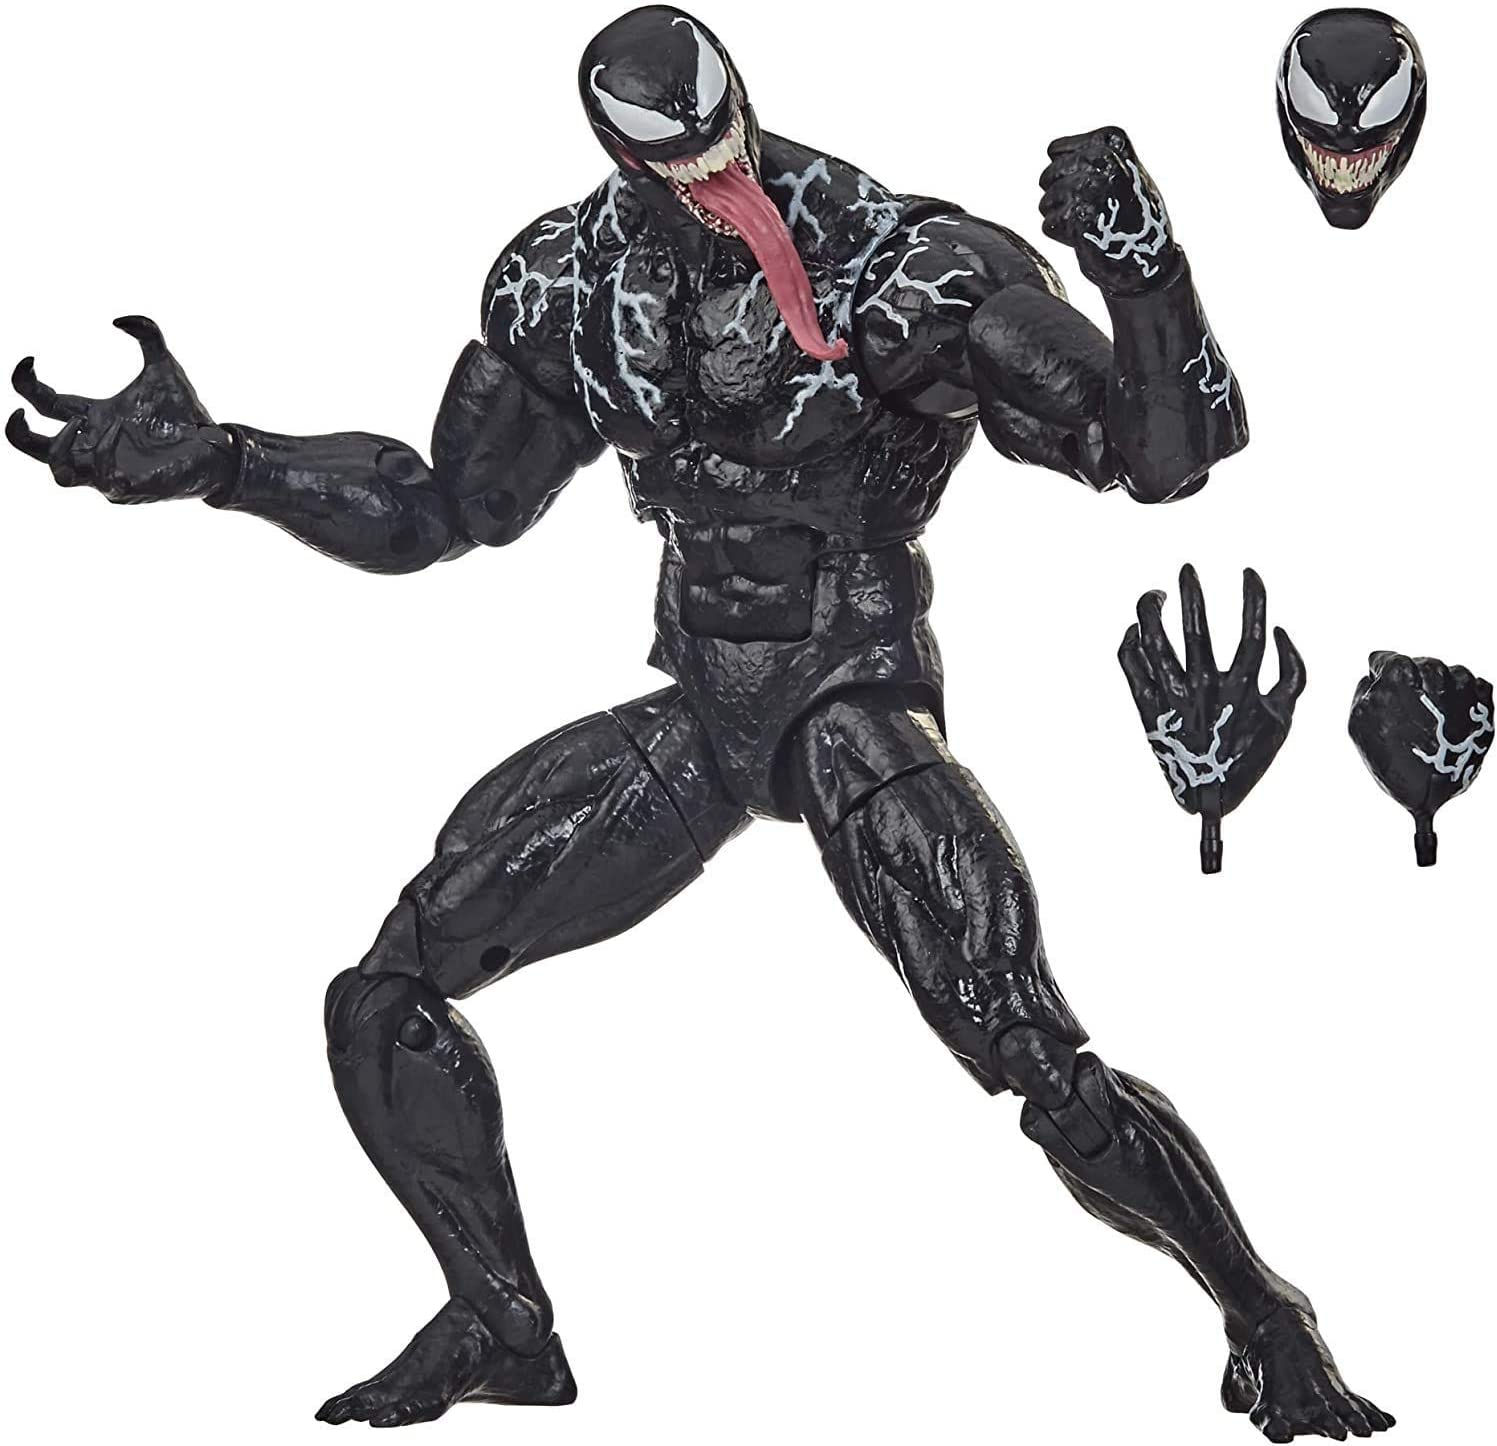 Hasbro Marvel Legends Series Venom 6-inch Fig mart Action Collectible Classic